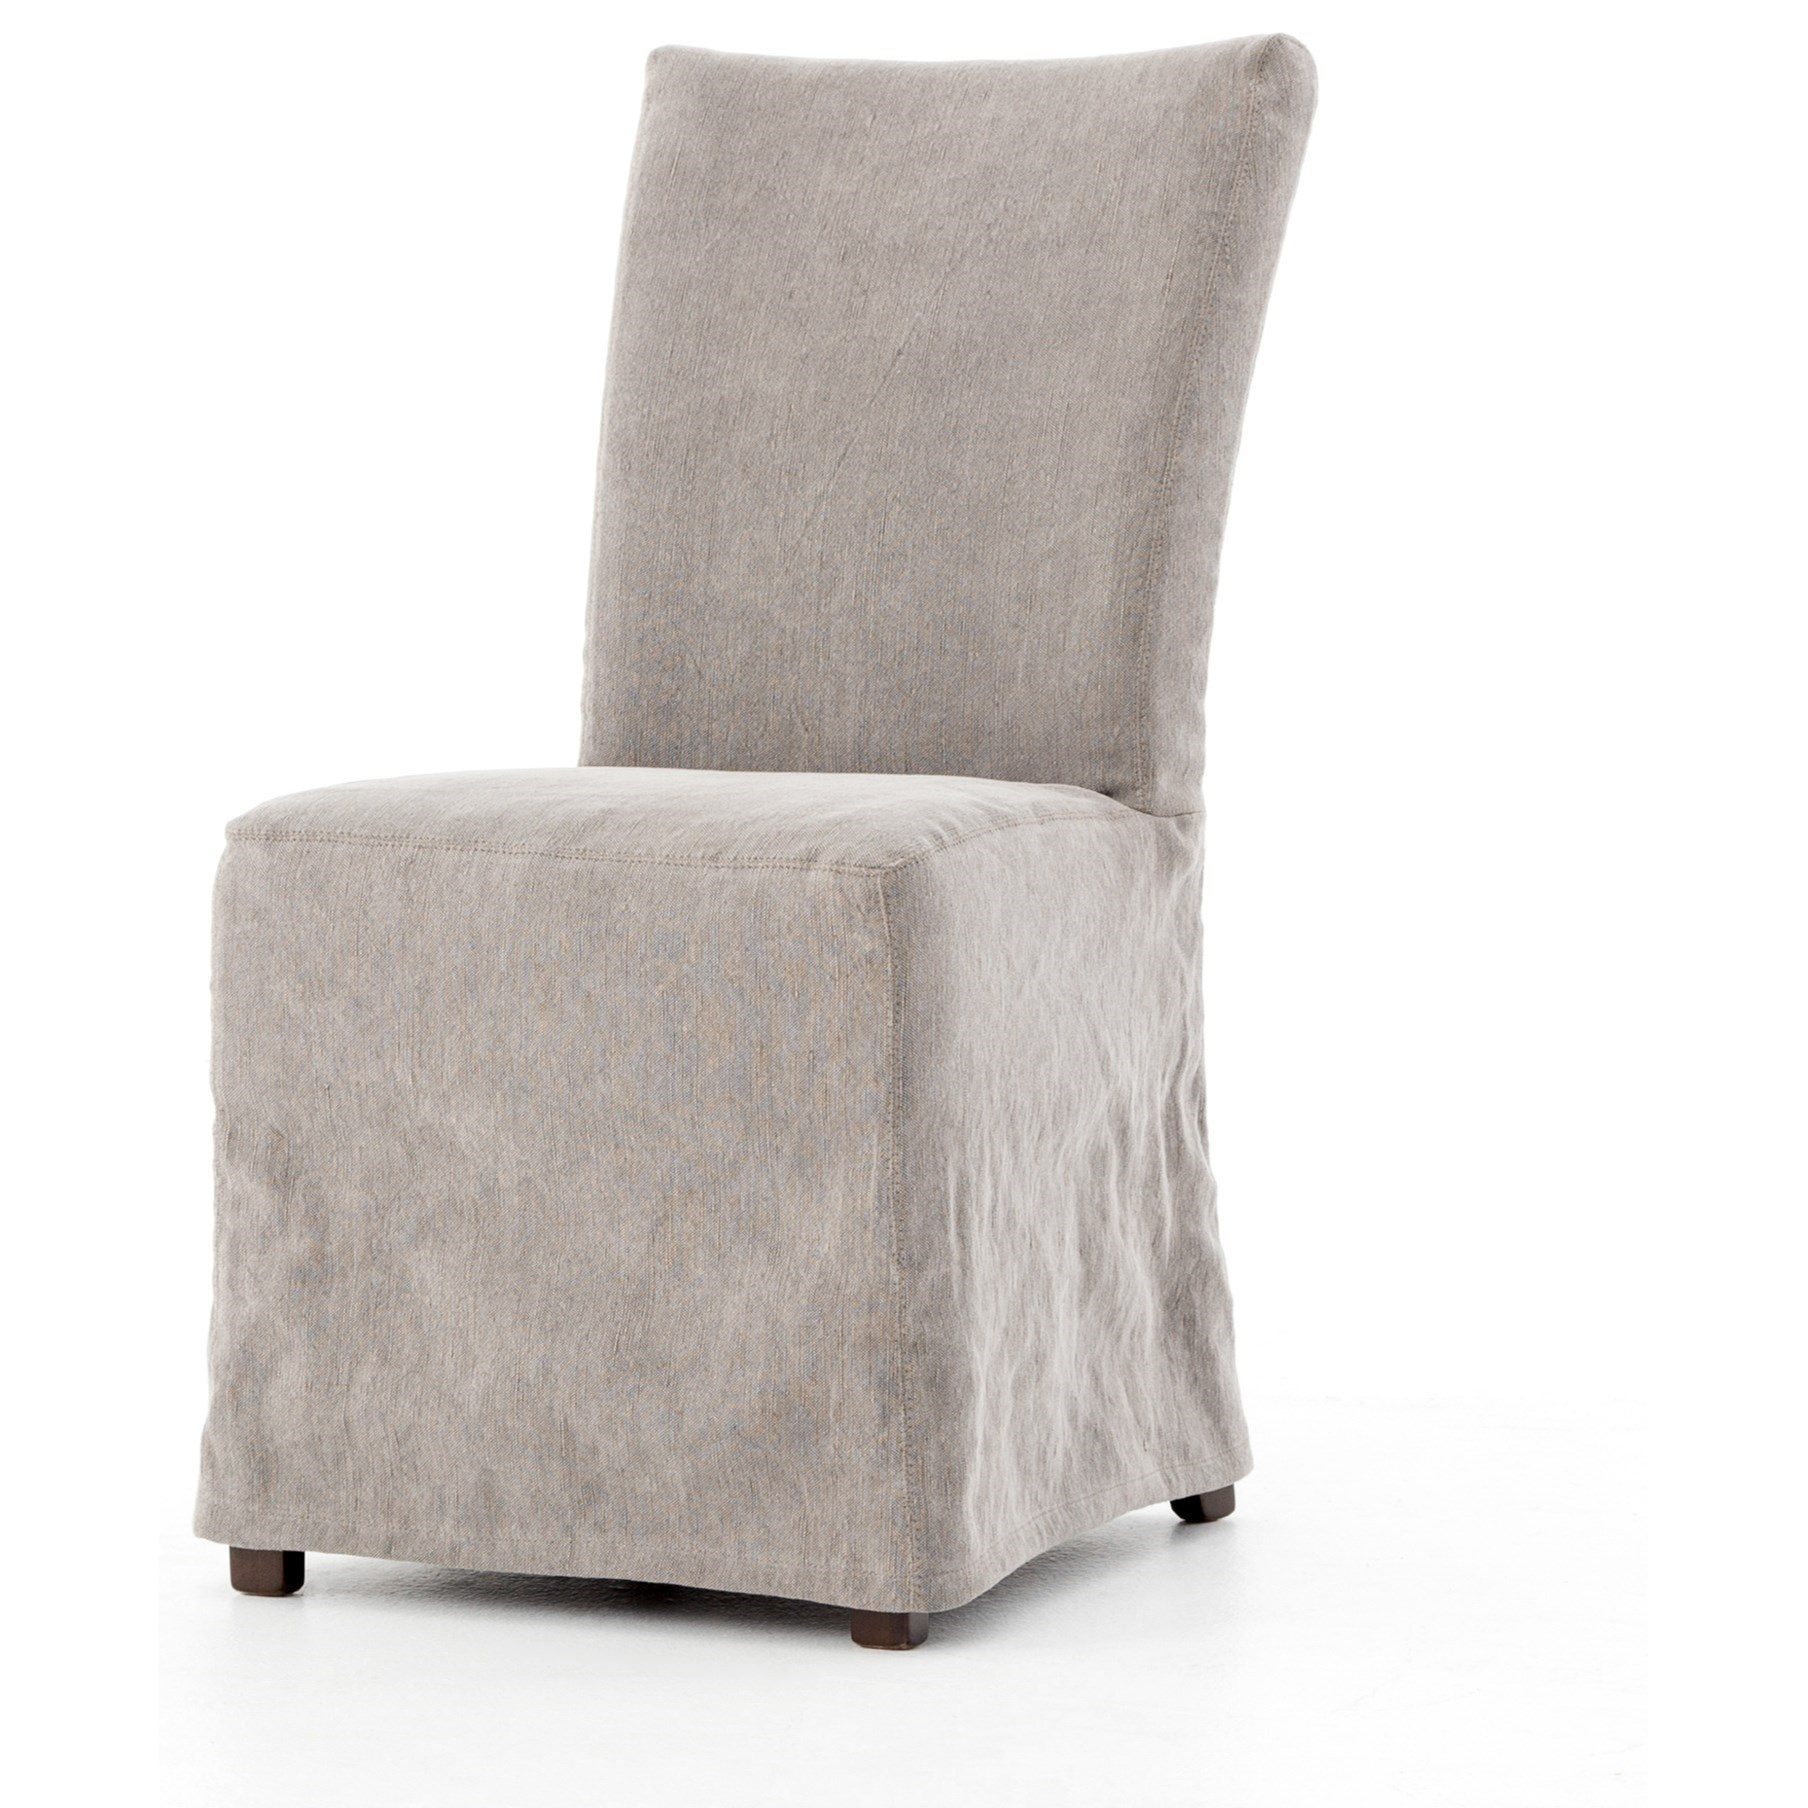 Ashford Vista Dining Chair by Four Hands at Alison Craig Home Furnishings